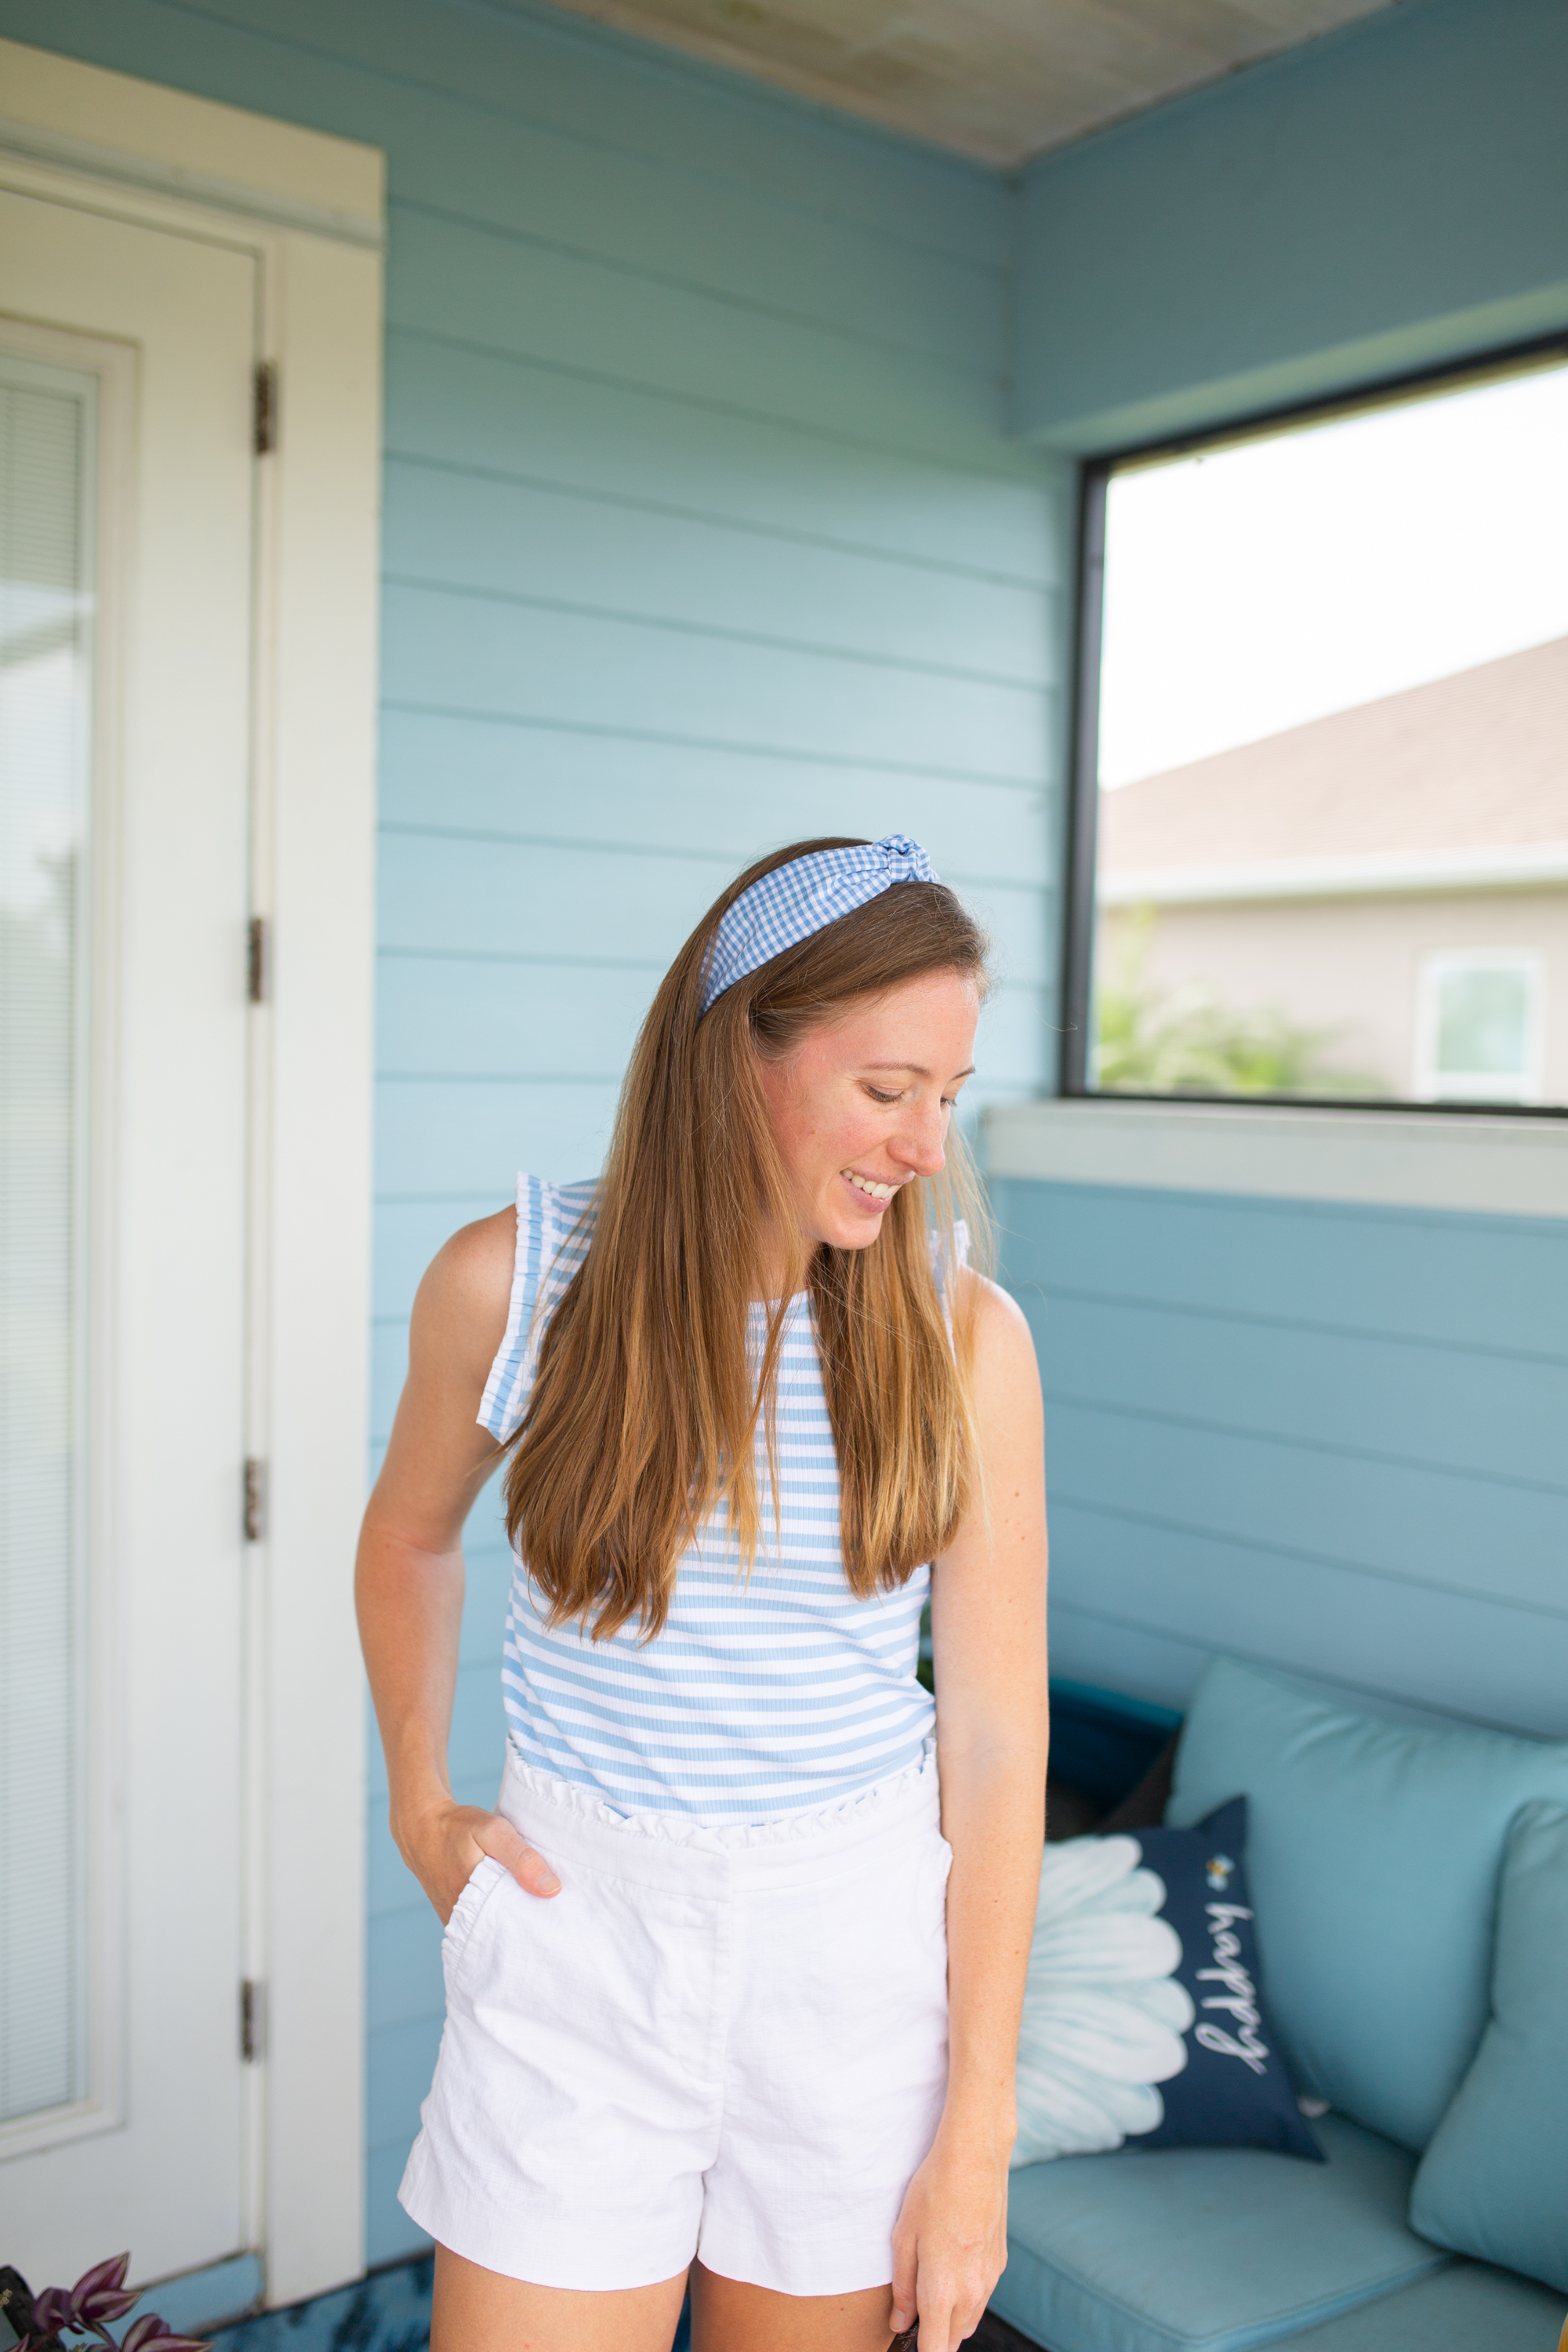 woman wearing Casual Summer Outfit of white shorts, shirt, and headband